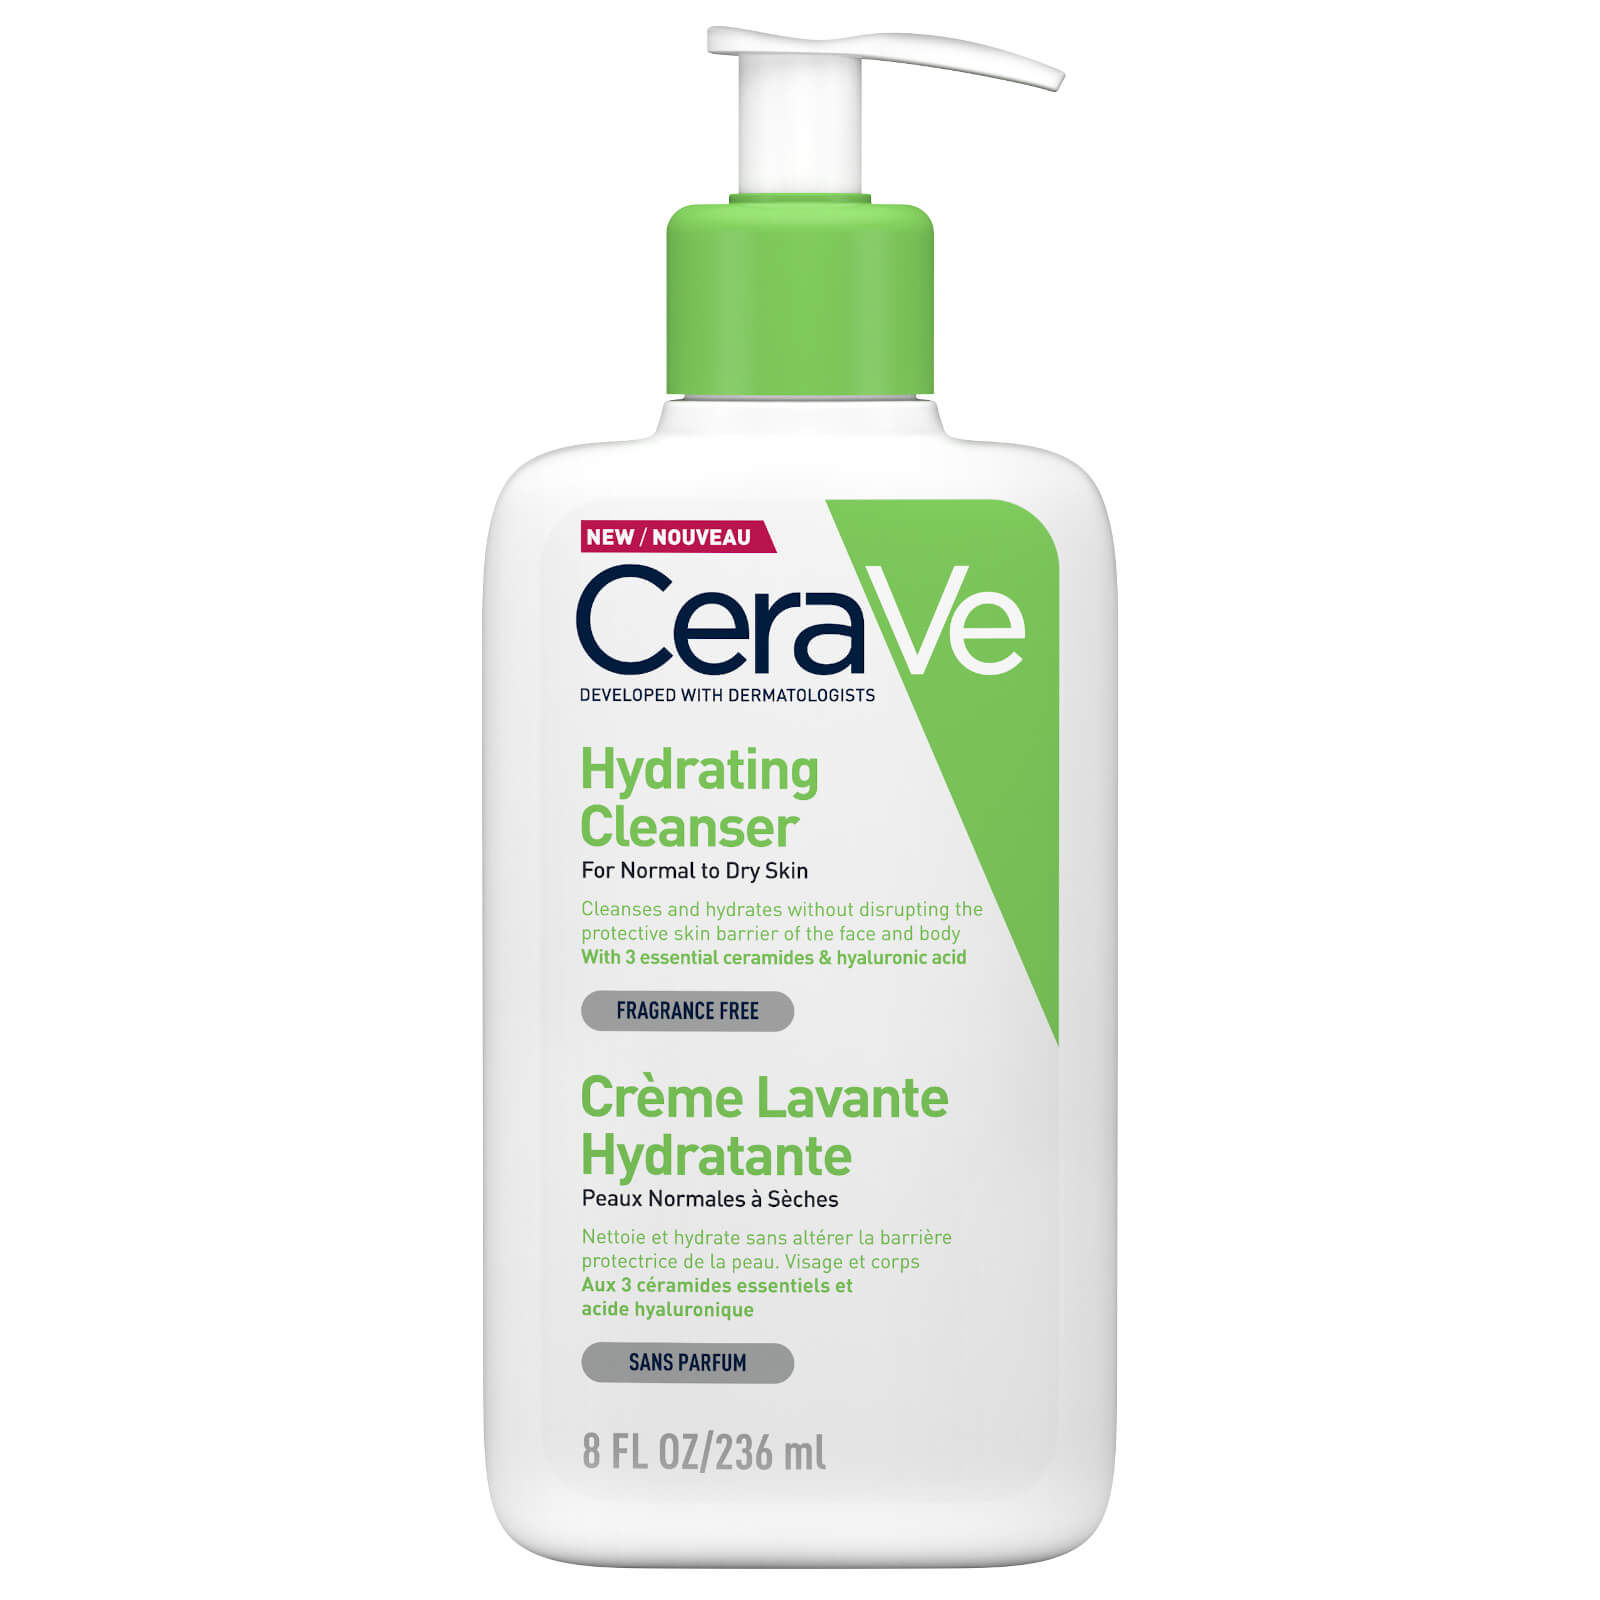 Cerave hydrating gel